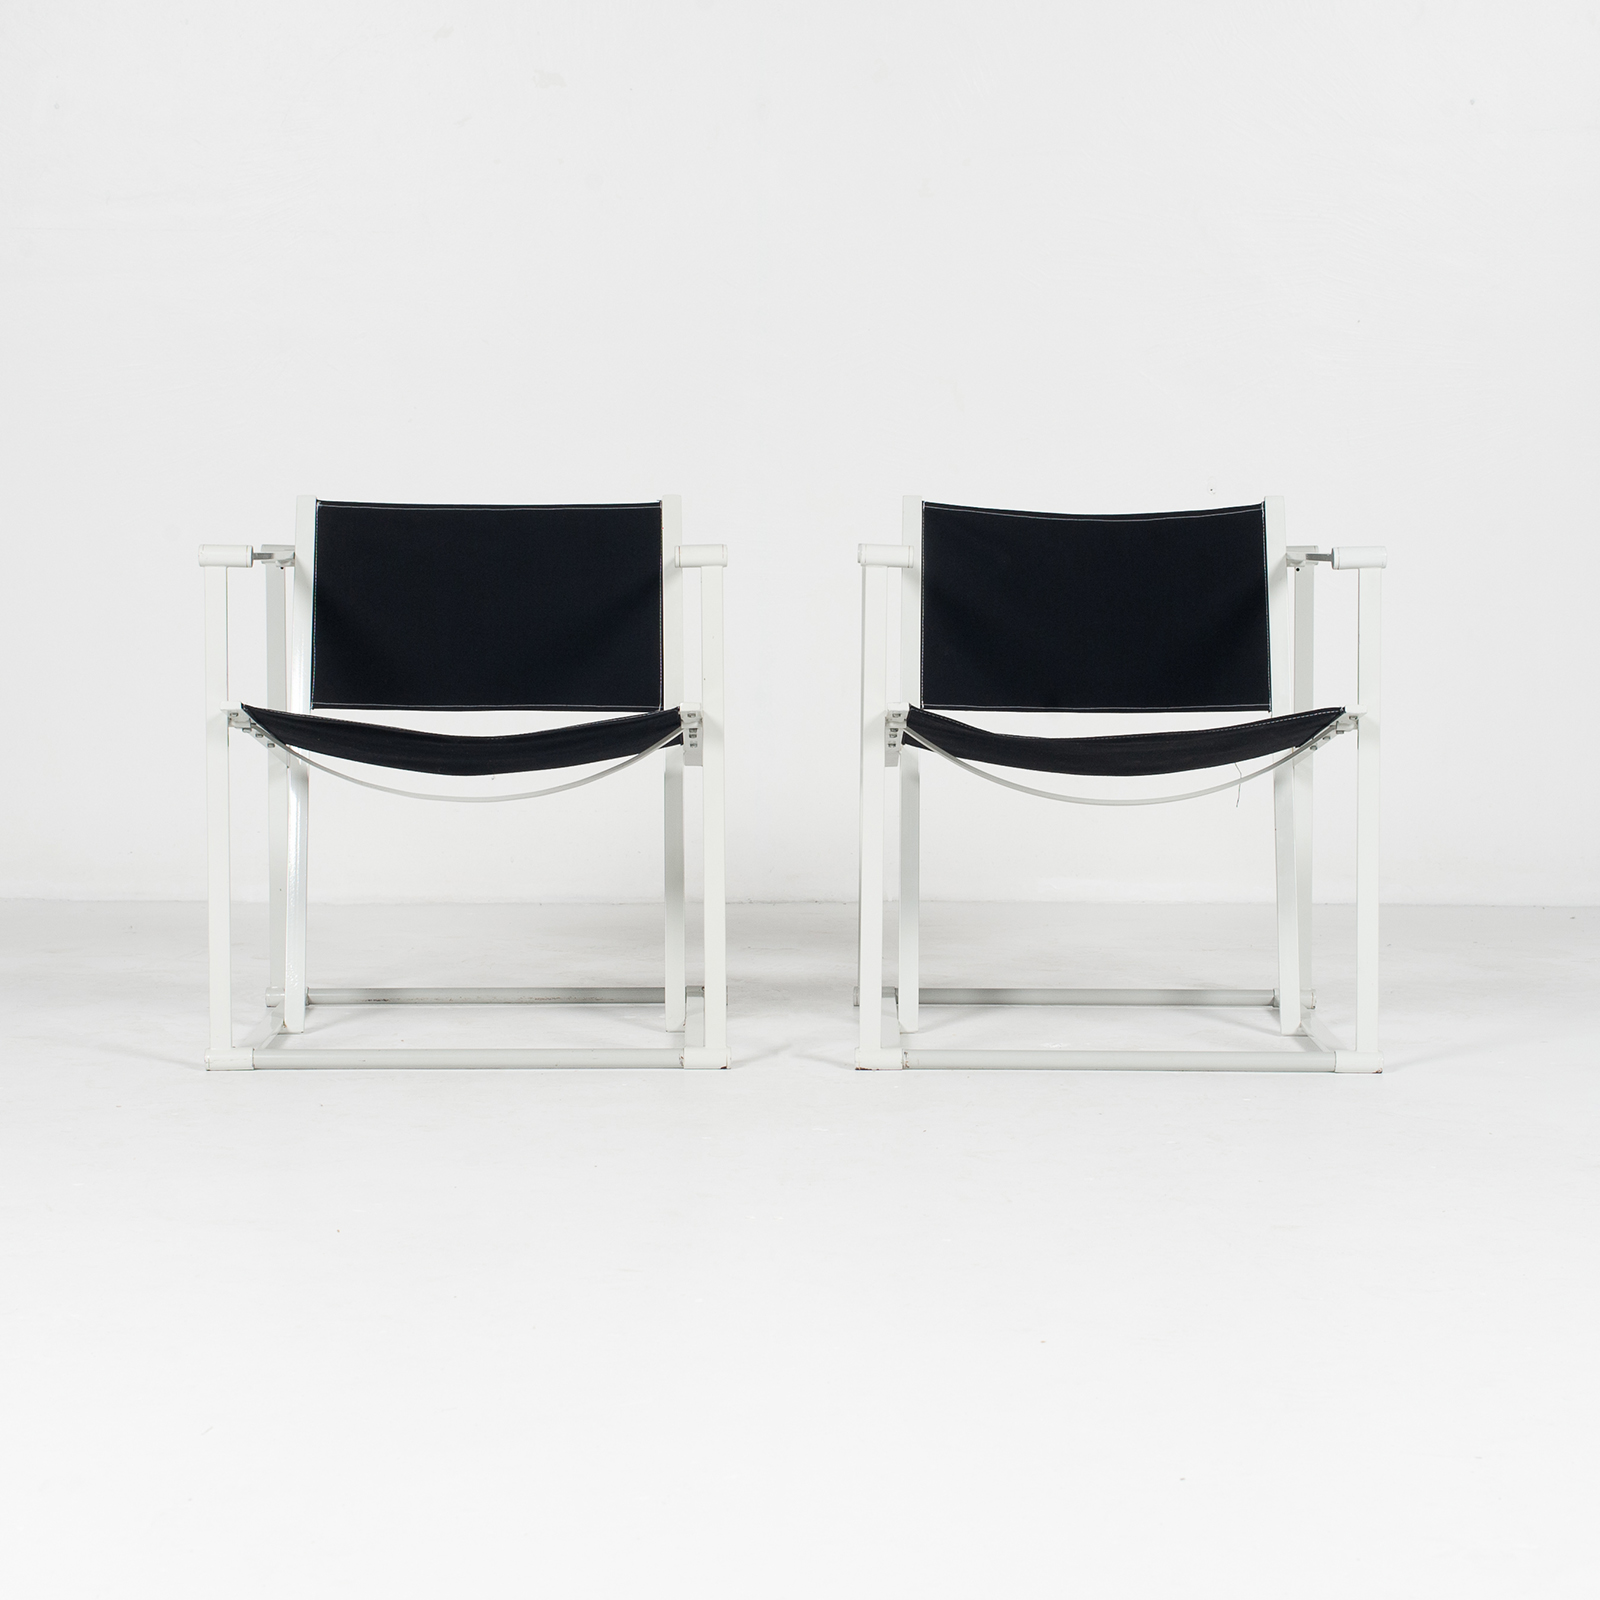 Model Fm60 Cubic Chair By Radboud Van Beekum For Pastoe In Black Canvas And Grey Frame, 1980s, The Netherlands38